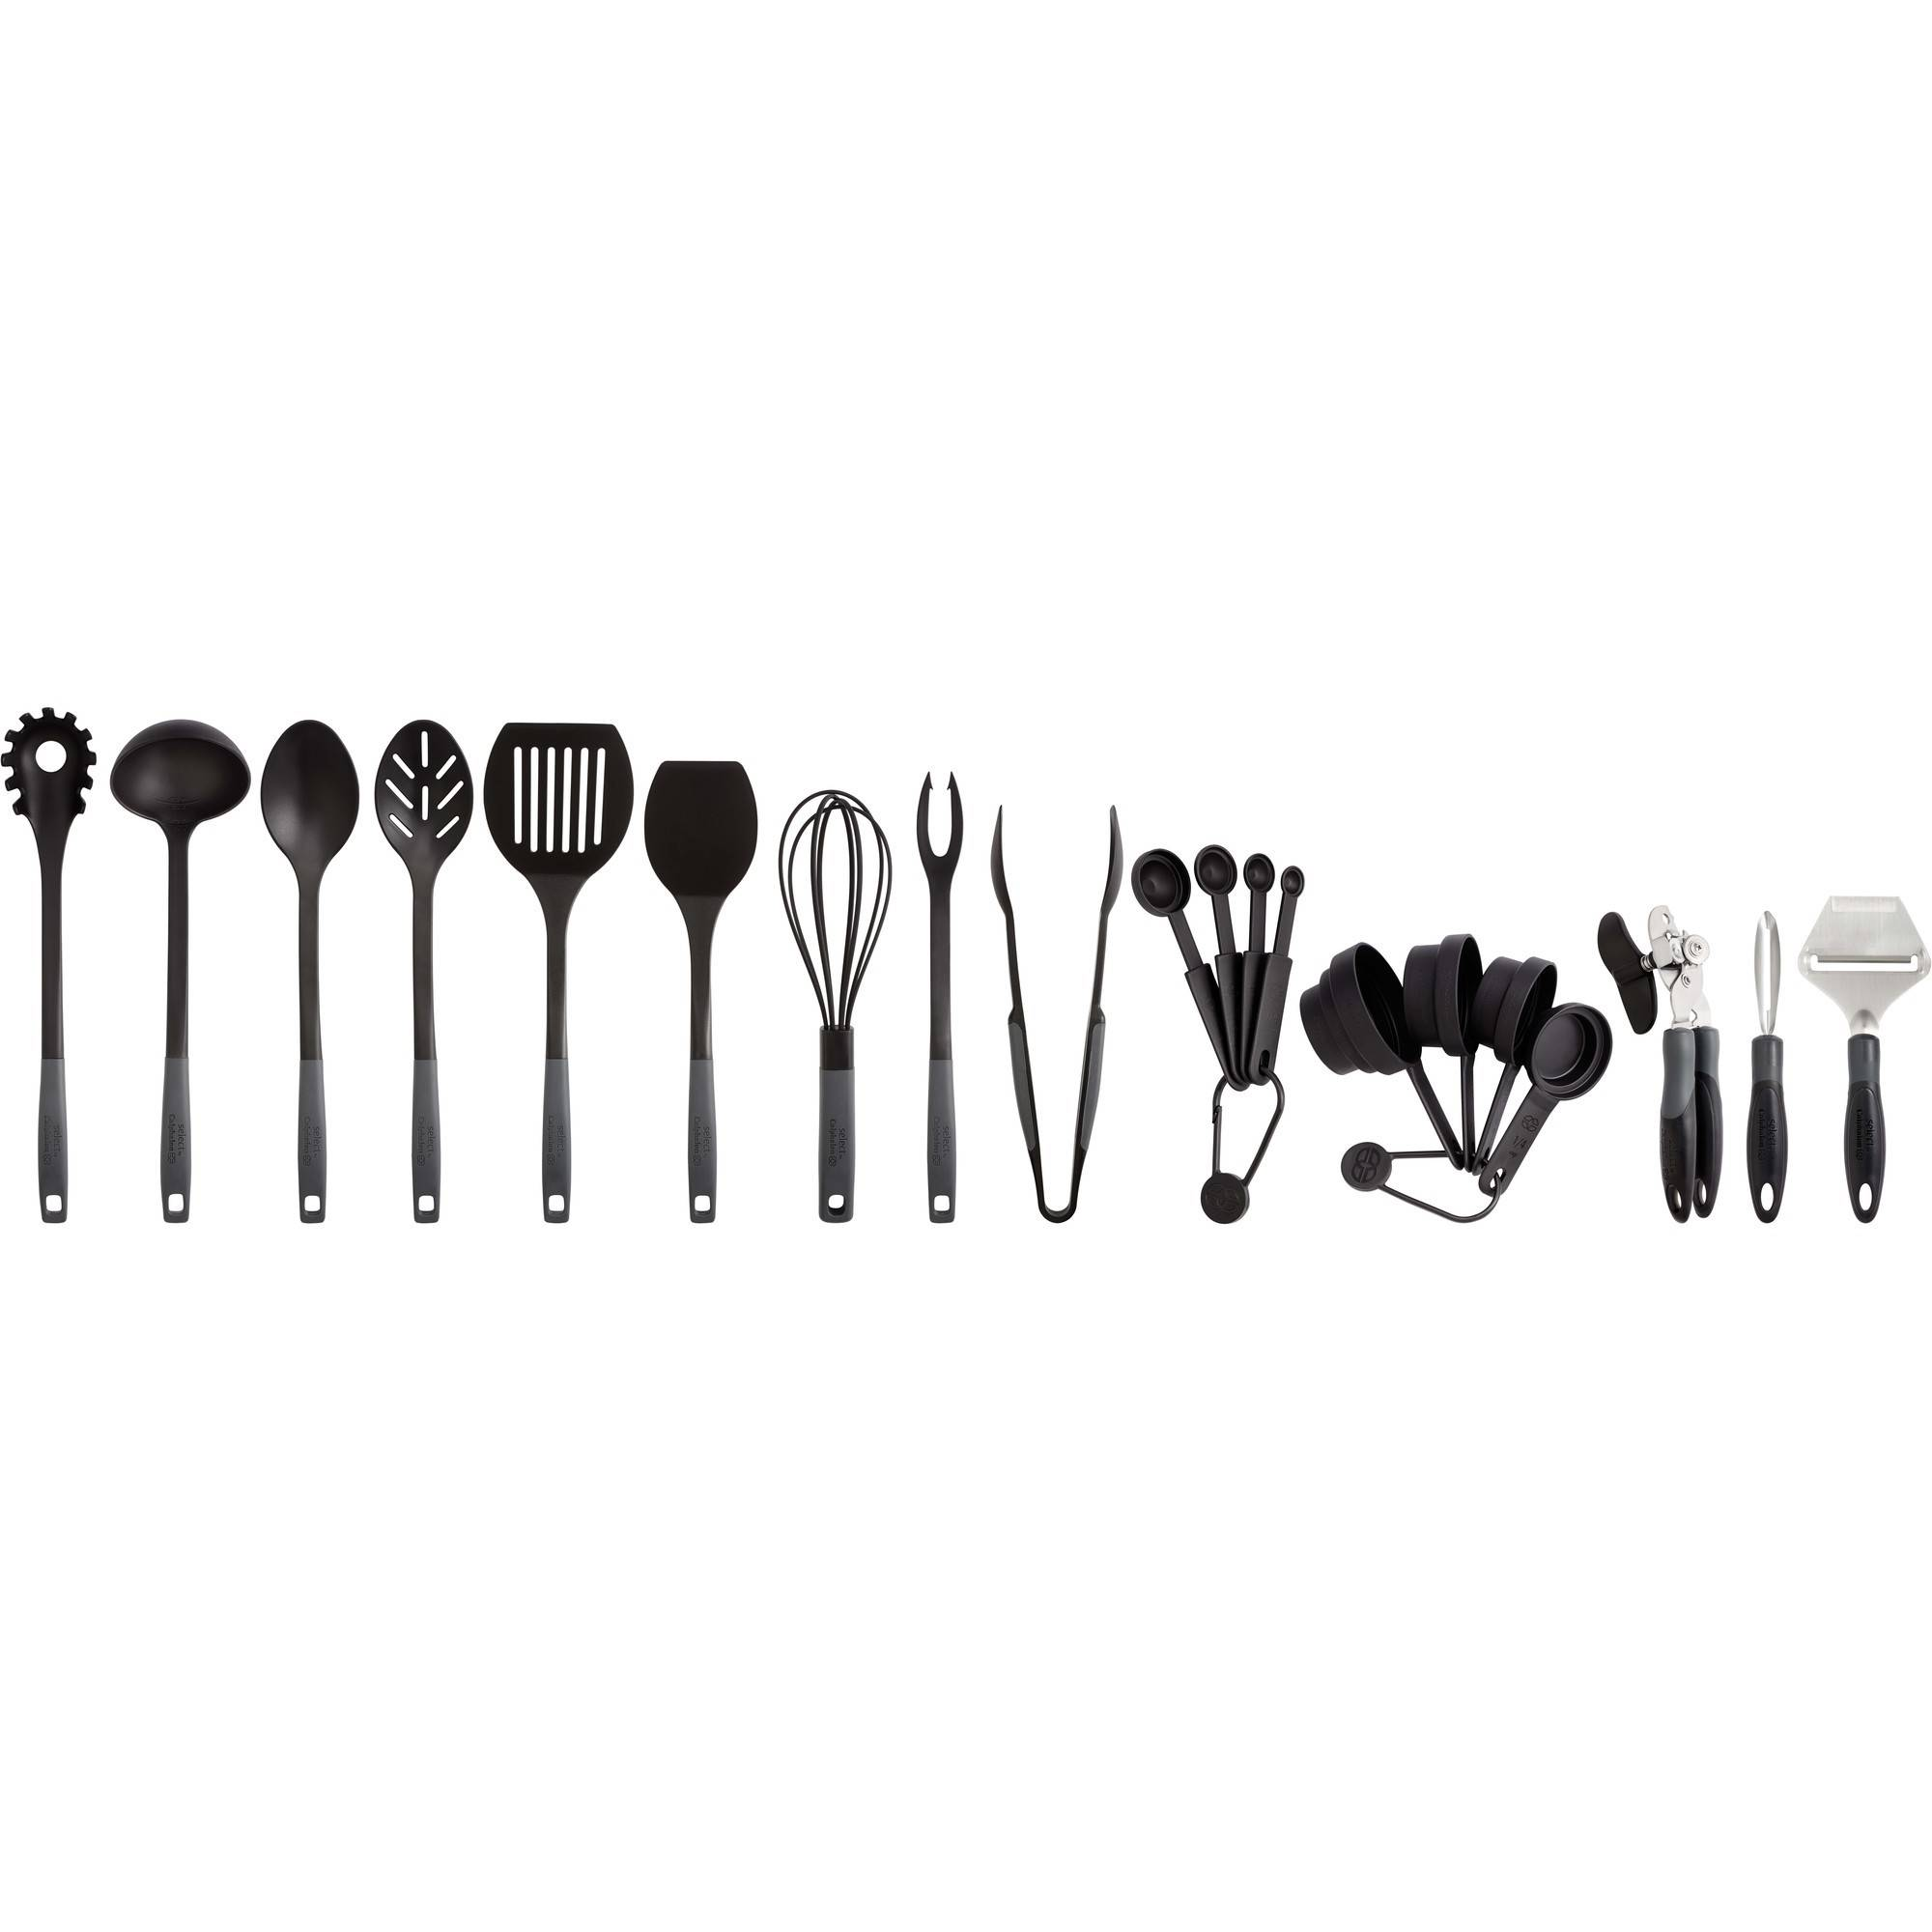 Select By Calphalon 20-Piece Utensil Set